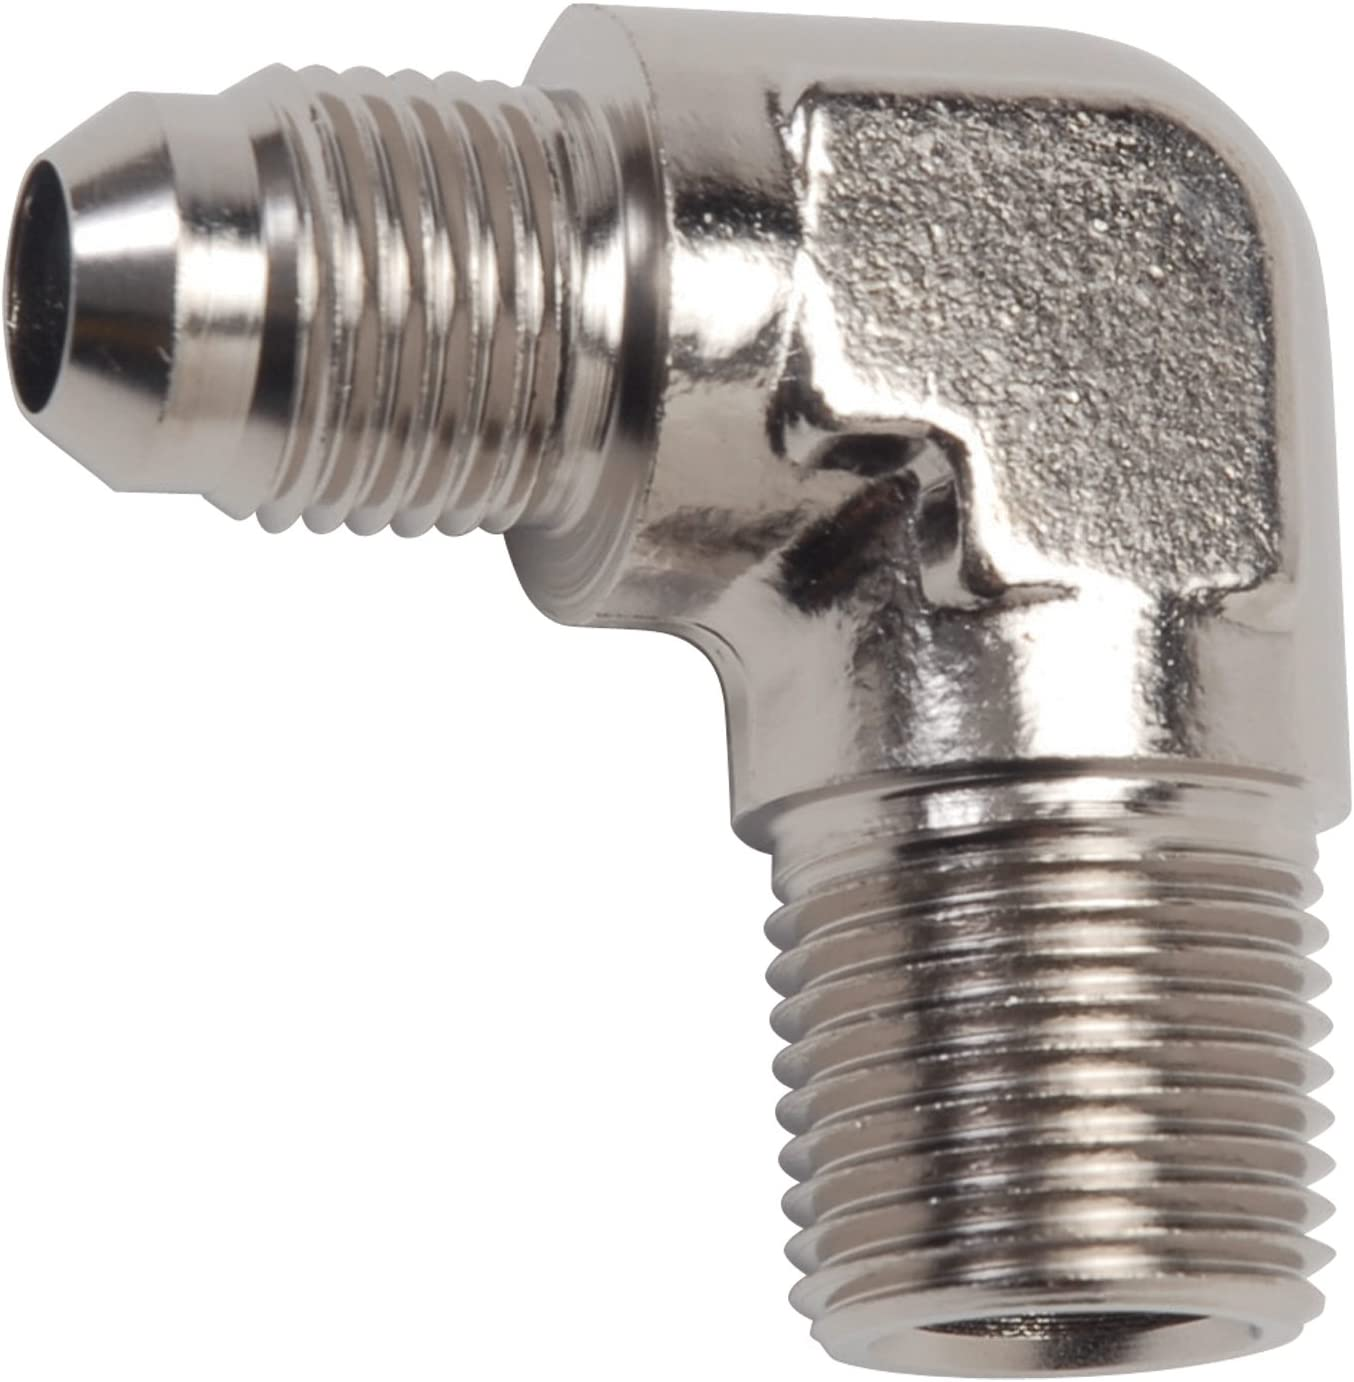 Russell 660871 ADAPTER FITTING